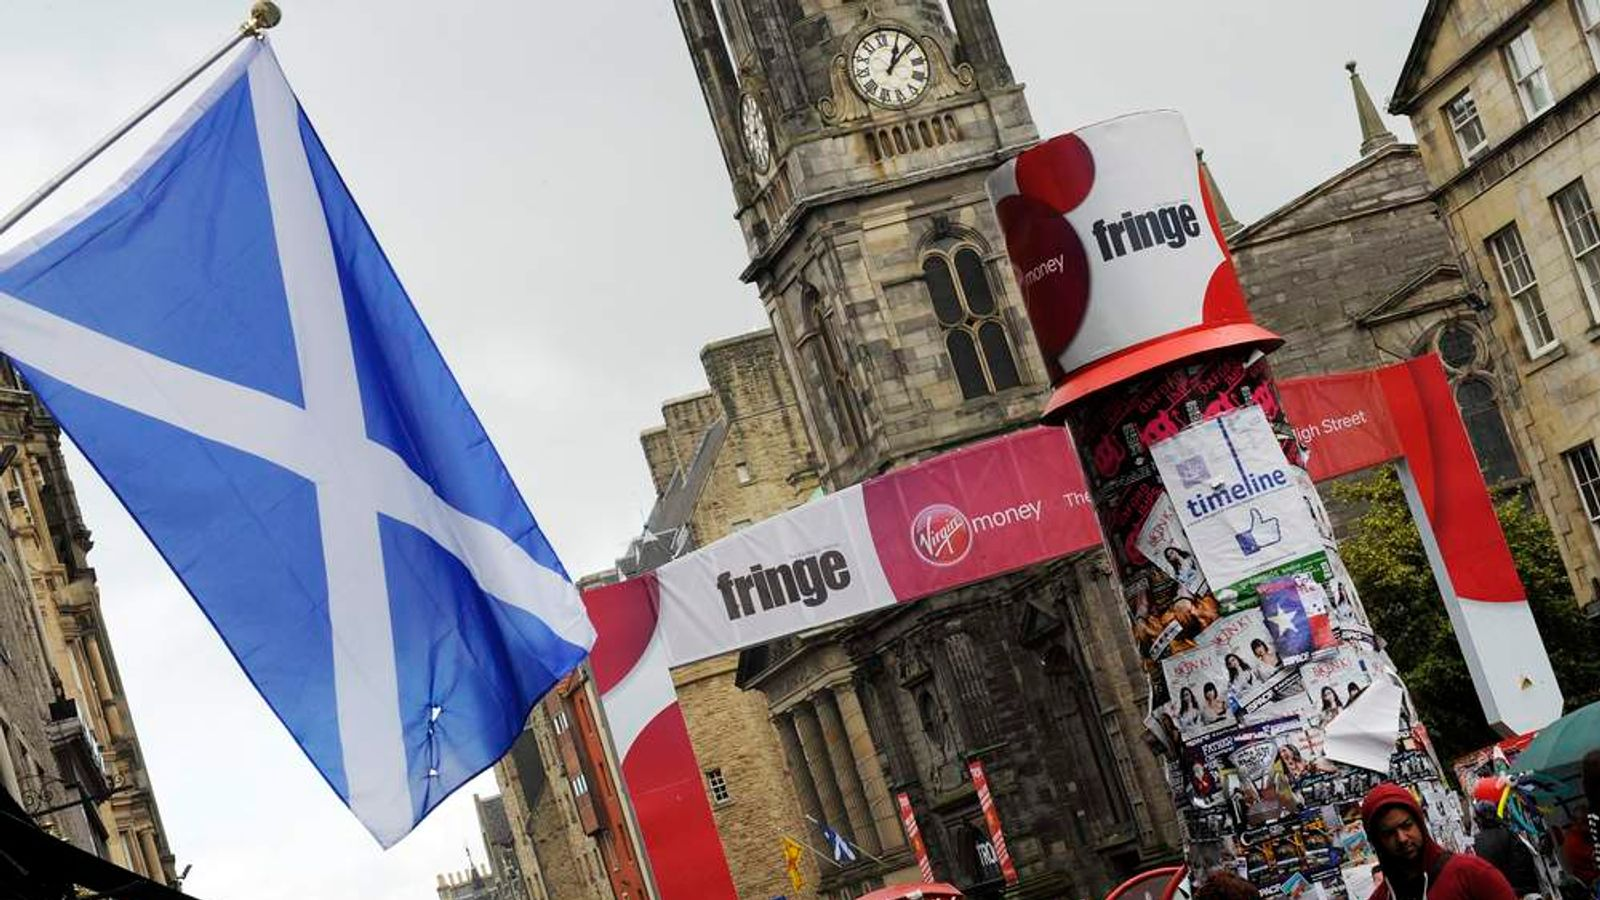 The Scottish Saltire hangs in Edinburgh during the annual Festival Fringe in 2013